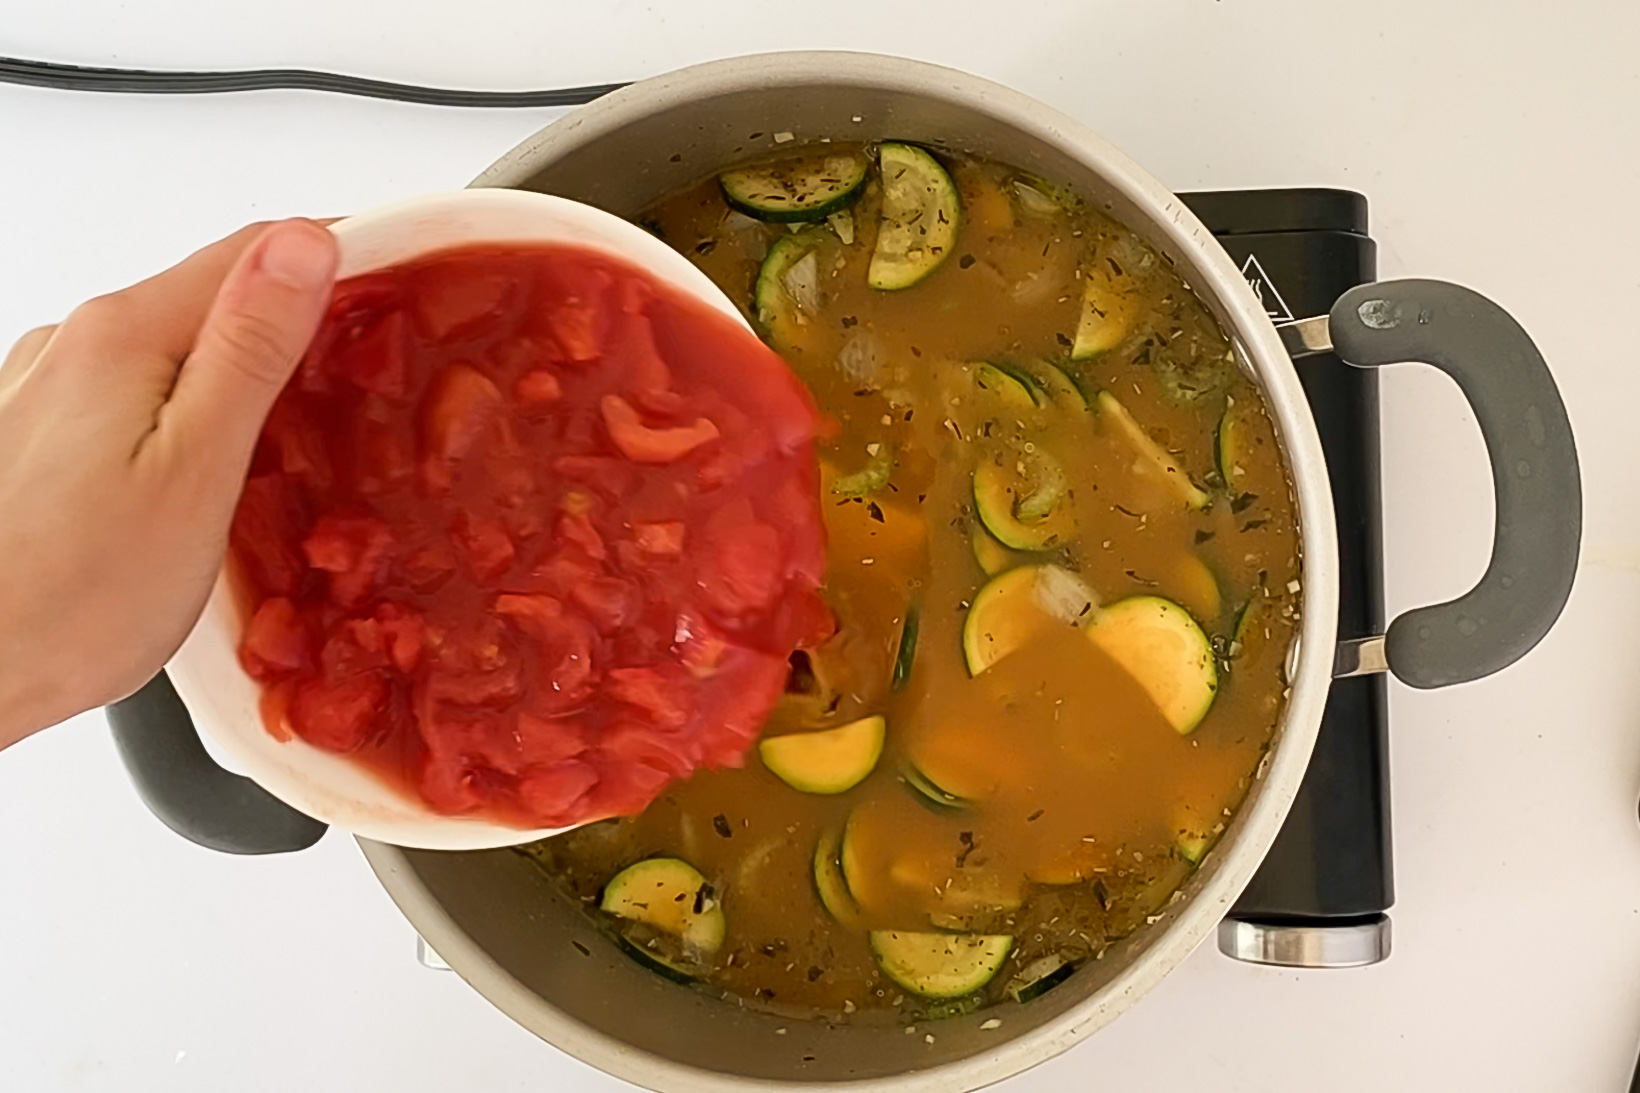 Overhead view of a hand adding canned diced tomatoes to the pot with veggies and broth.